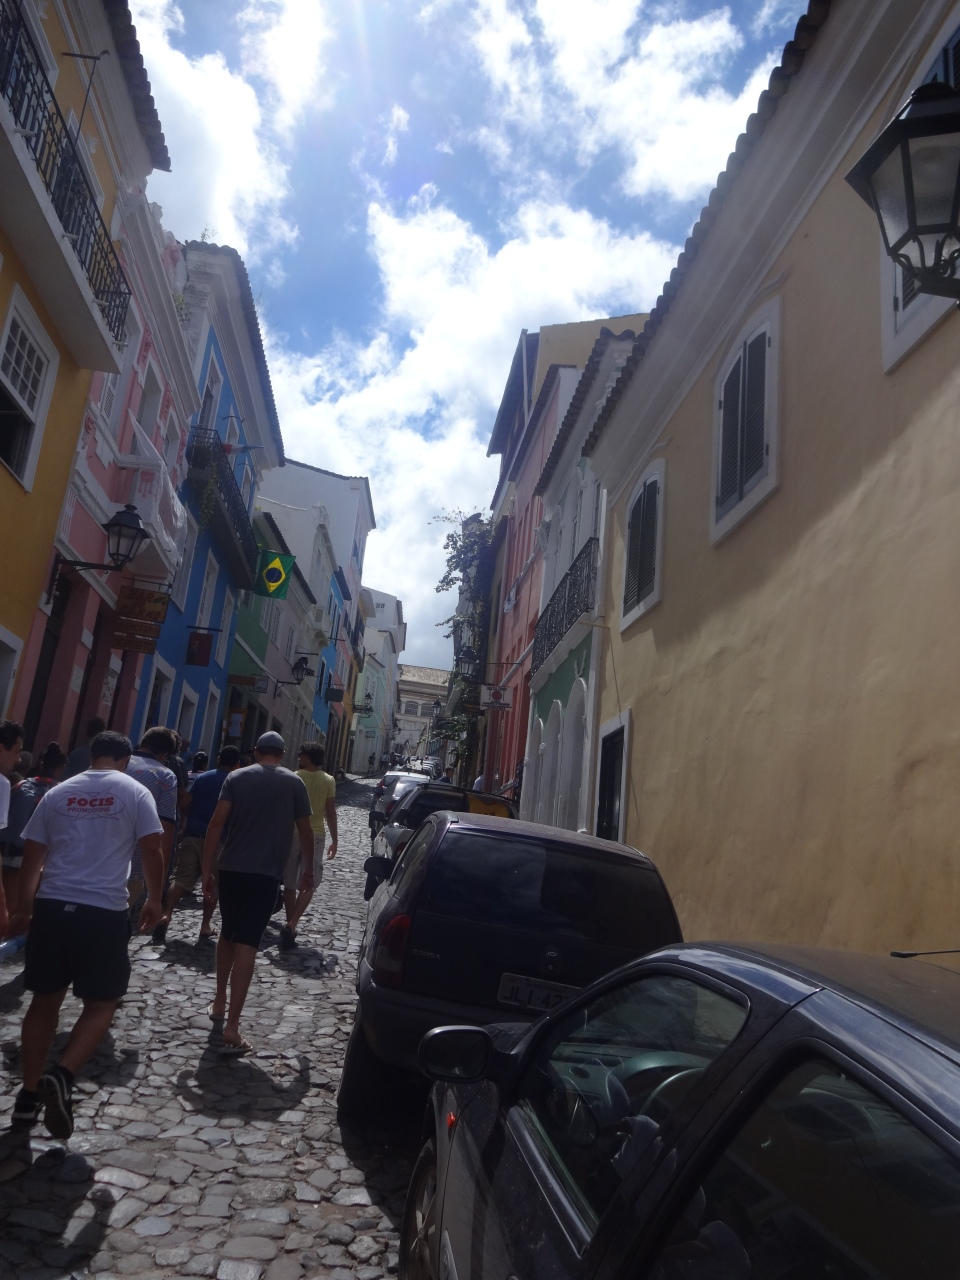 Scaling the steep, stone-strewn streets of Pelourinho, the historical heart of Salvador